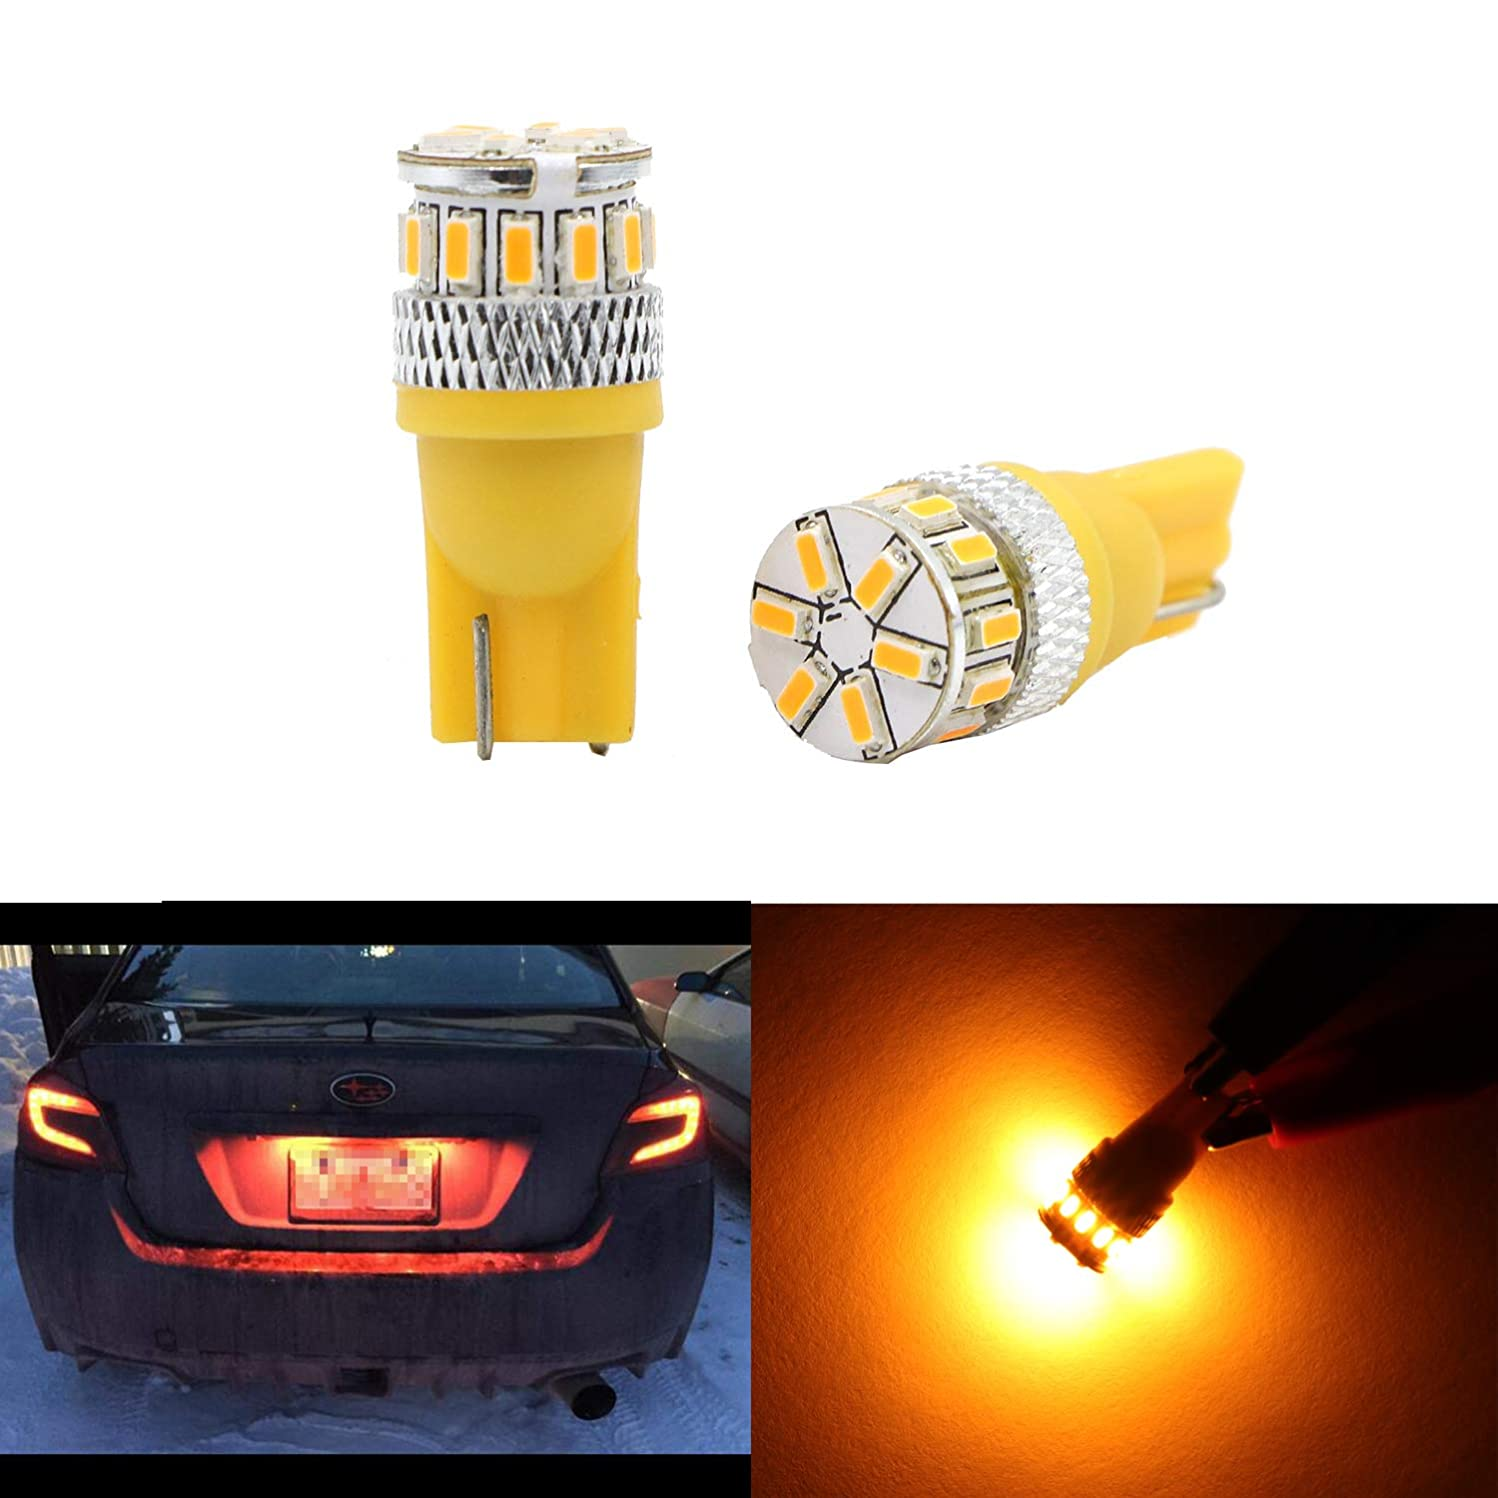 Amber Yellow LED Dome Light Glove Box Trunk Light 194 168 2825 175 192 W5W Bulb T10 Wedge High Power 3014 18 SMD Bulb for License Plate Interior Map Door Dome Side Marker Light